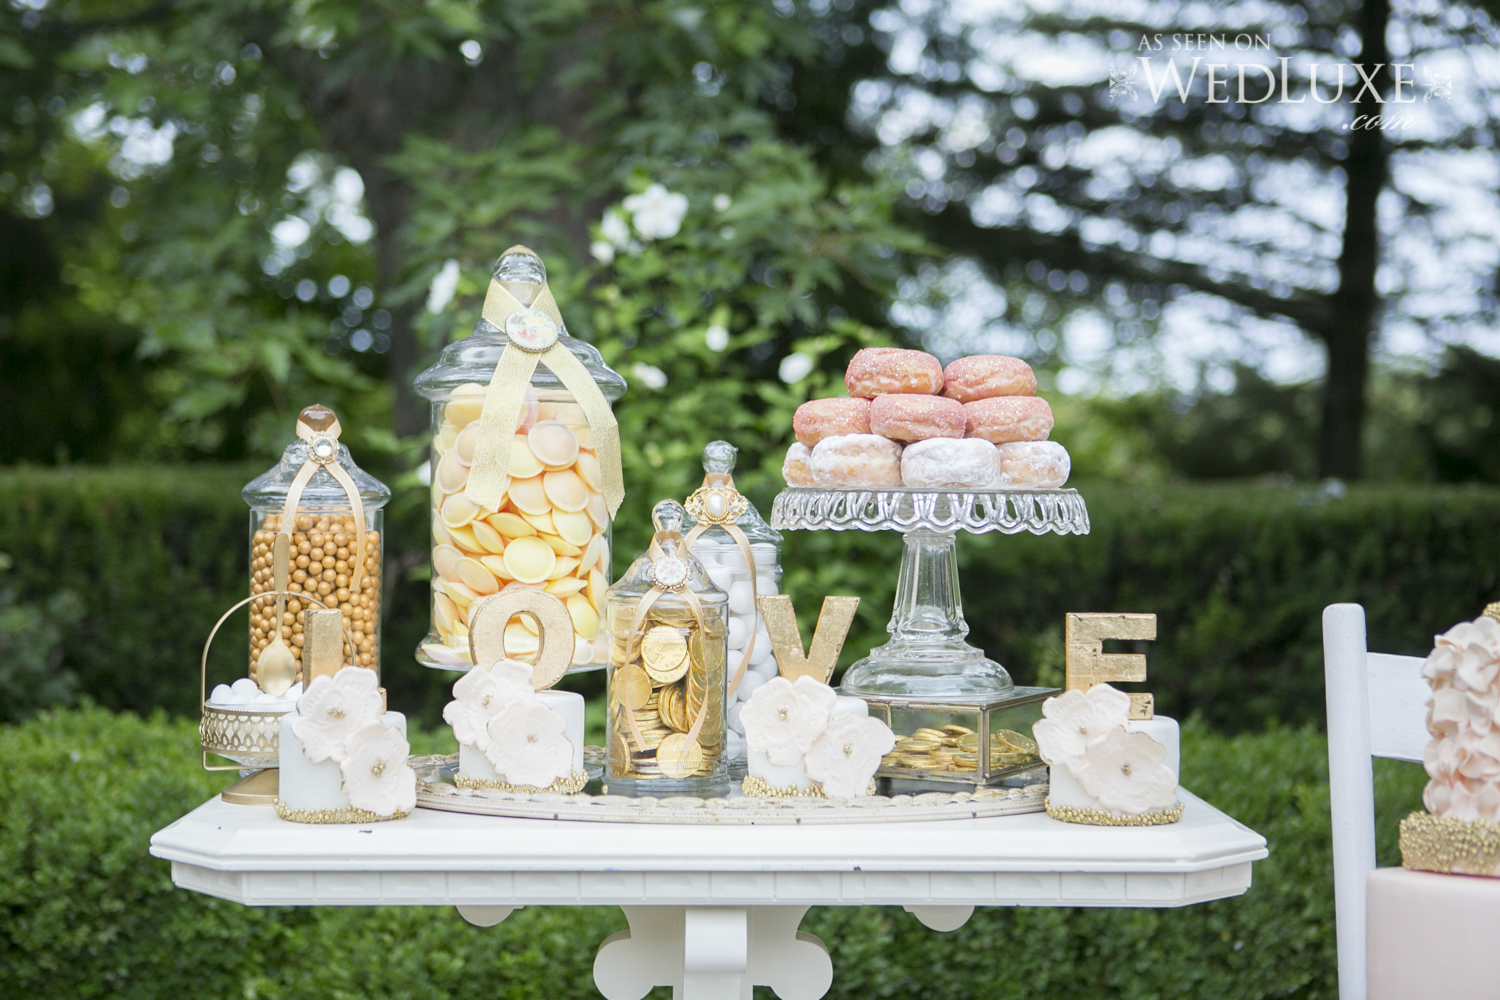 wedluxe-photographer-as-seen-on-professional-wedding-photographer-eva-derrick-photography-wedding-portrait-ruffled-photographer-green-wedding-shoes-vendor-niagara-wedding-helper-swish-list-vendor-photographer-winter-niagara-greenhouse-rings-florals-flower-my-bouquet-gracewood-niagara-on-the-lake-kurtz-oarchards-bride-groom-ceremony-reception-bouquet-love-romance-candy-by-katie-sweet-table-candy-table-favours-treats-sweets-simply-beautiful-decor-linens-chargers-photo.jpg